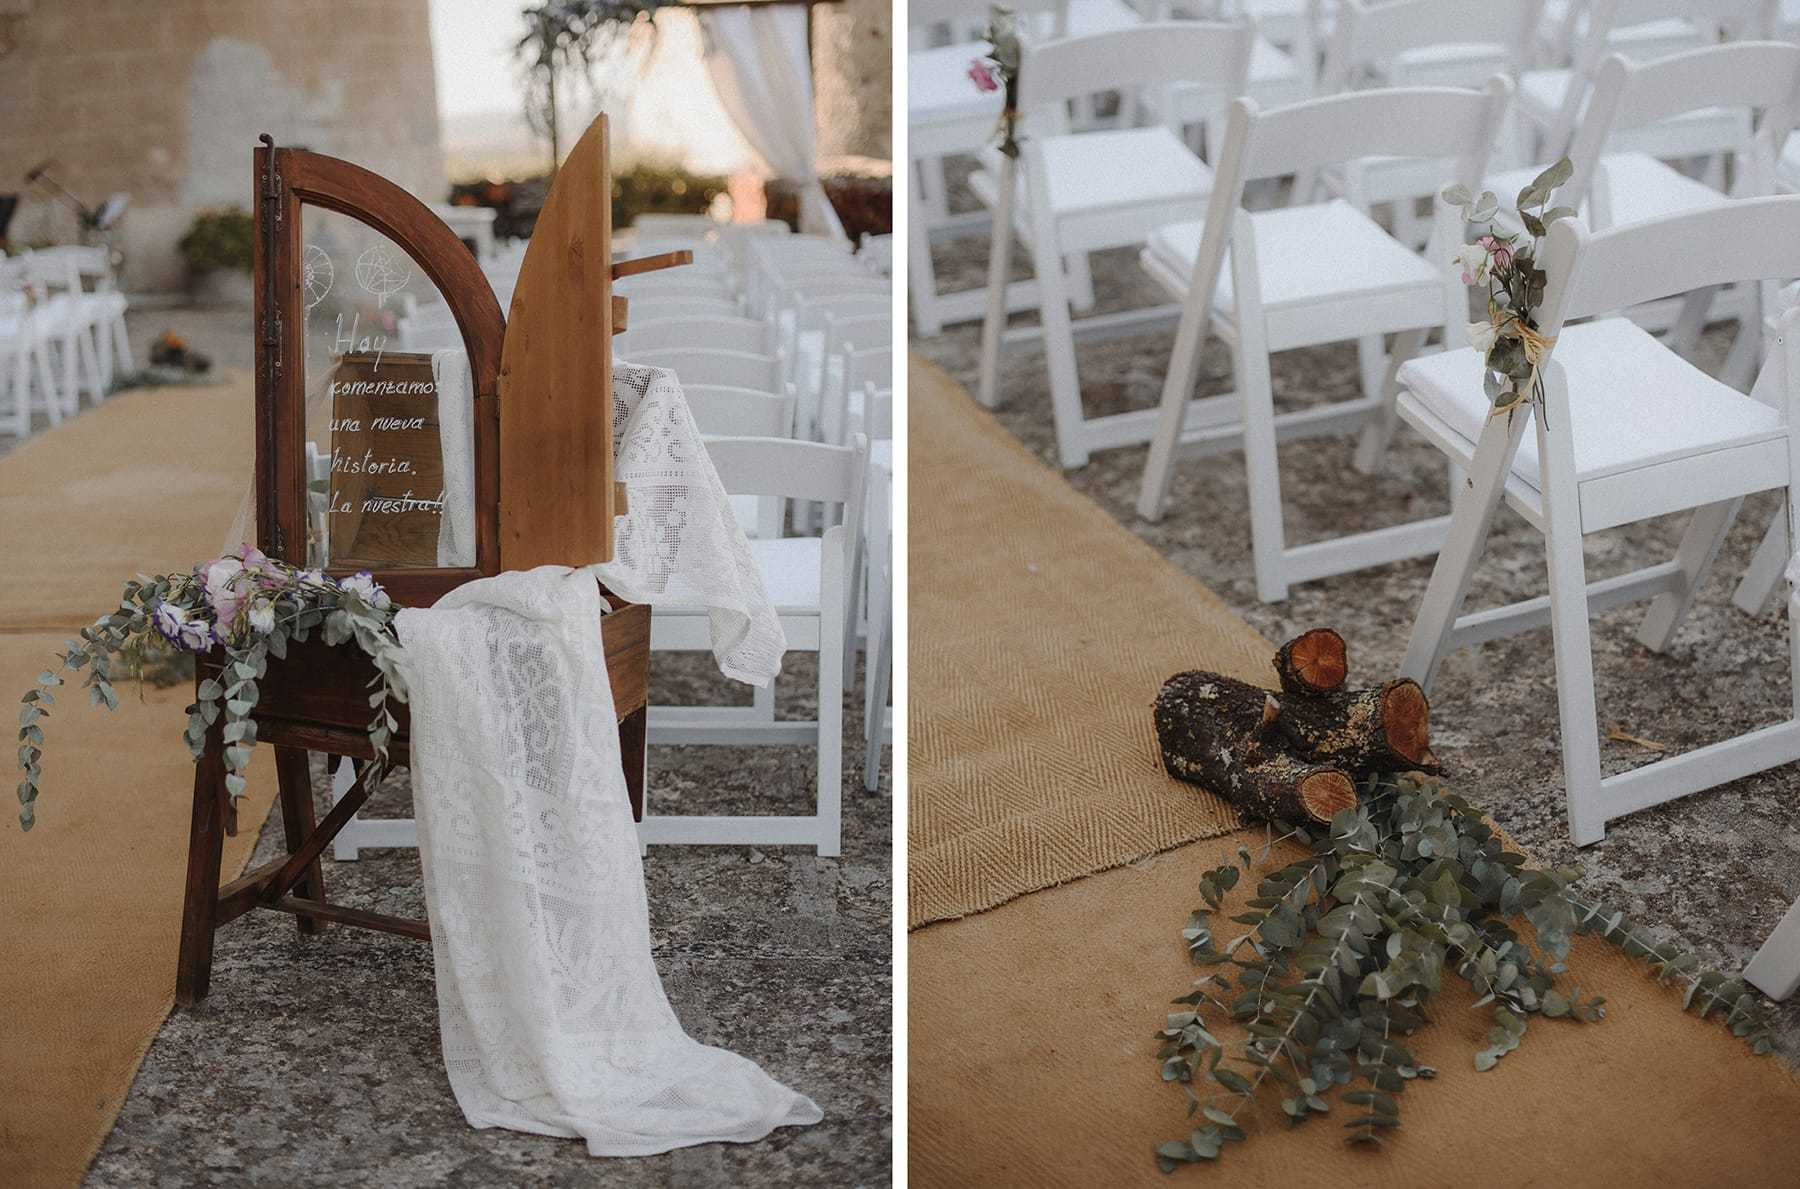 Decoración de boda